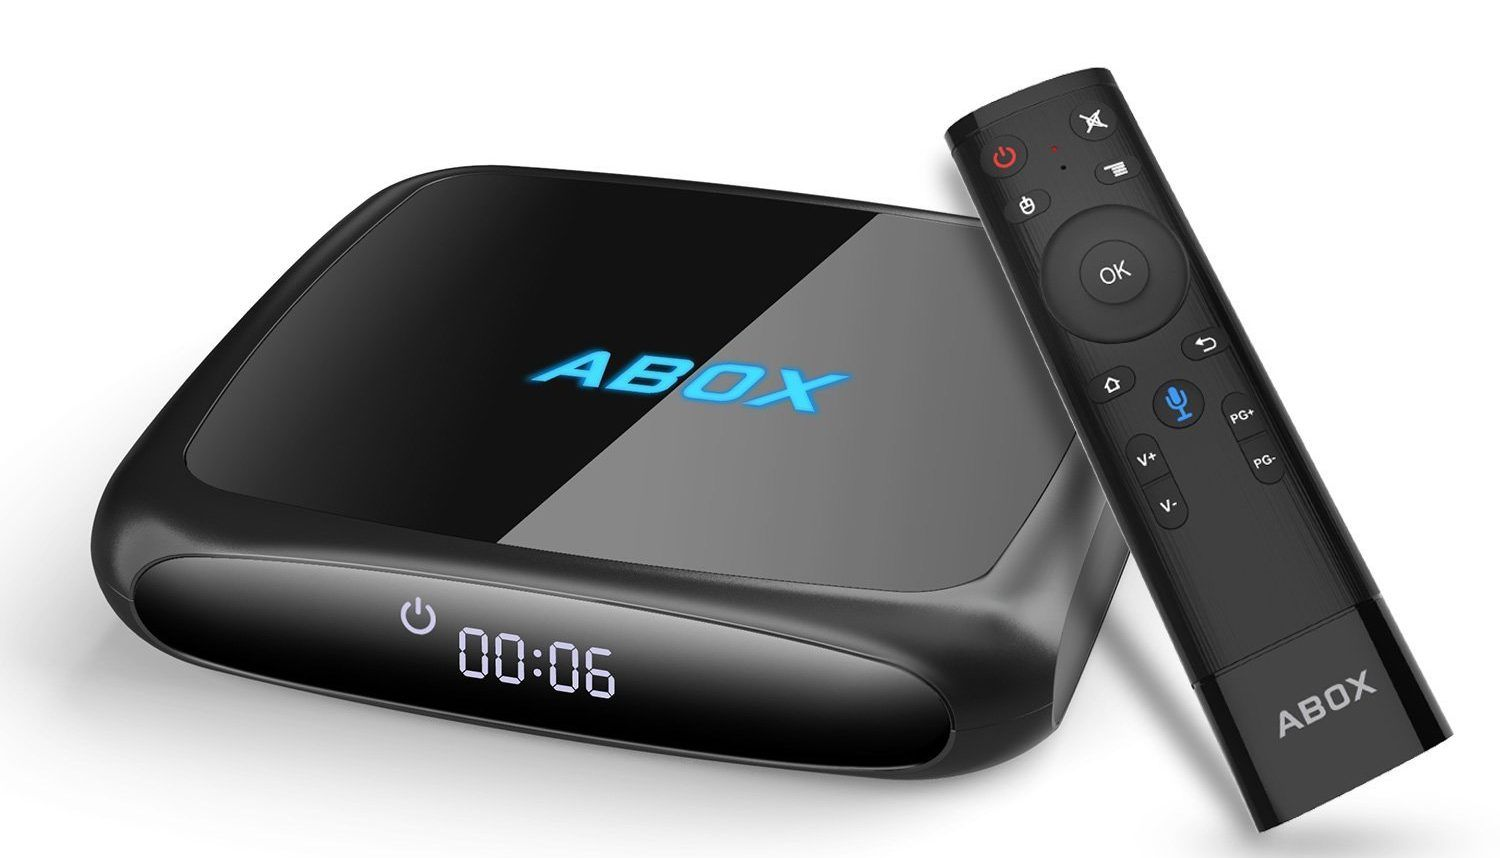 ABOX 4th Generation A4 Android Tv Box Review – New for 2018